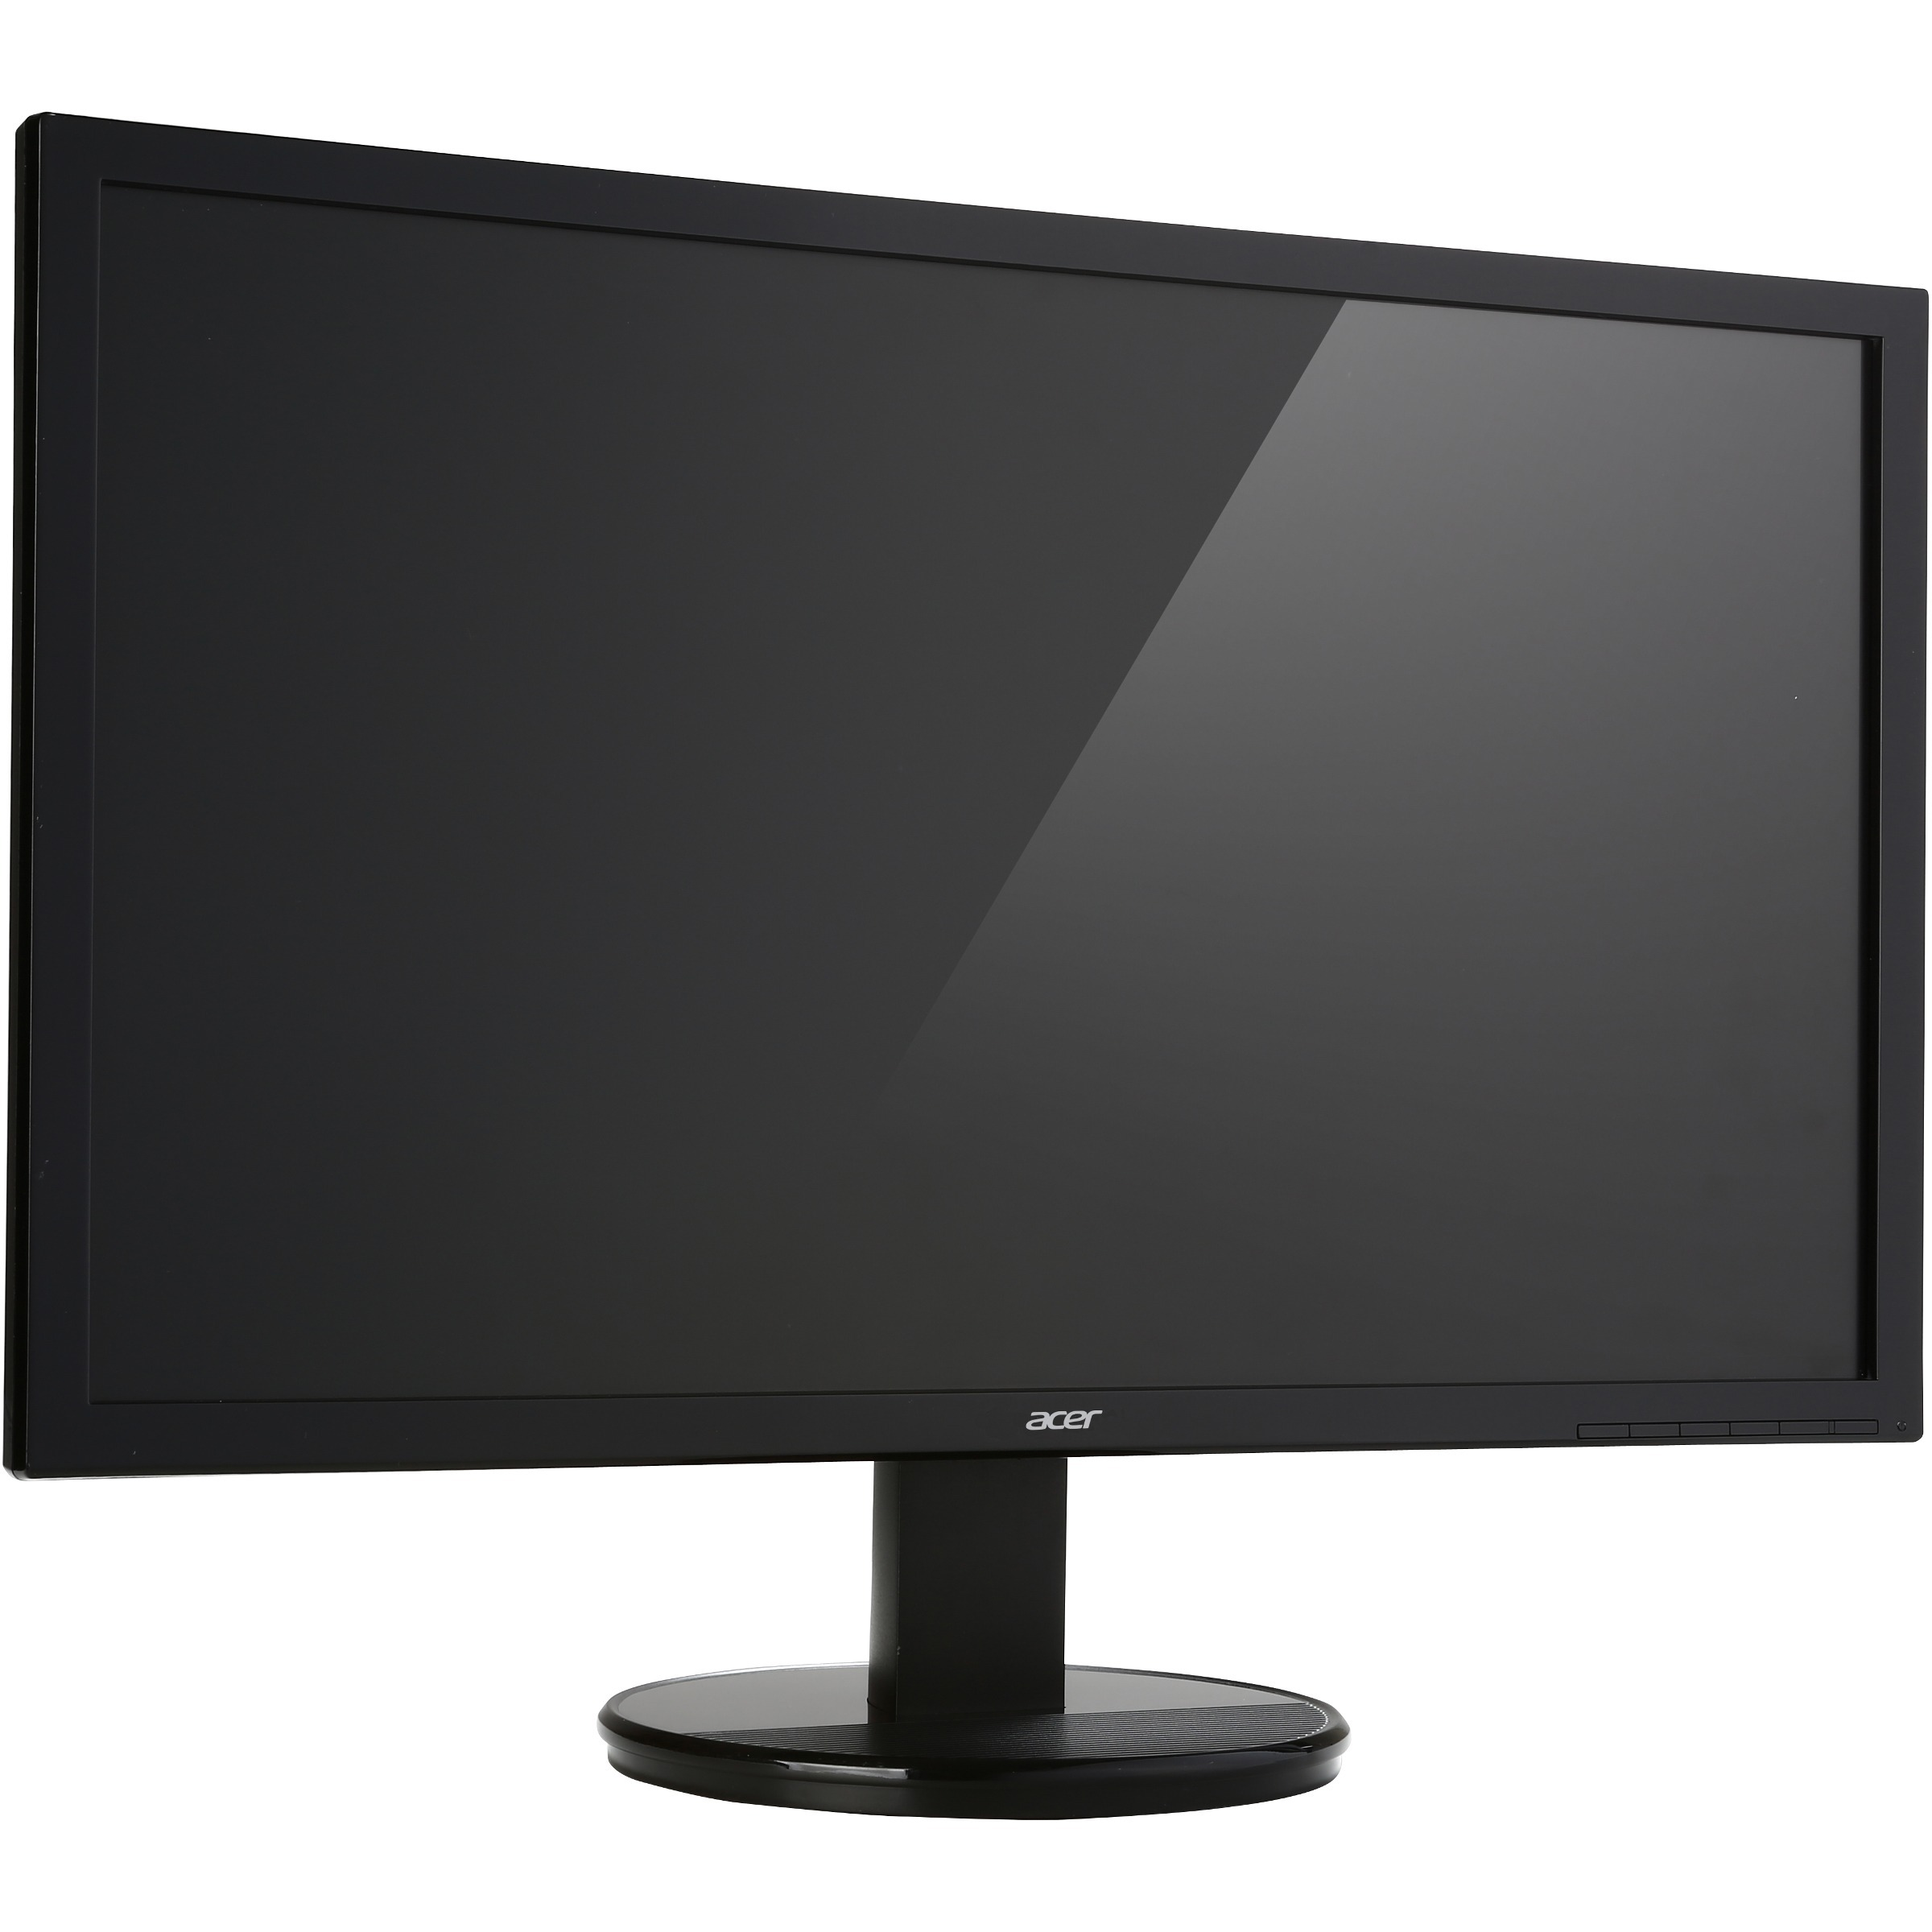 Acer K222HQL 54.6 cm 21.5inch LED LCD Monitor - 16:9 - 5 ms - Adjustable Display Angle - 1920 x 1080 - 16.7 Million Colours - 200 cd/mAnd#178; - Full HD - DVI - HDMI -